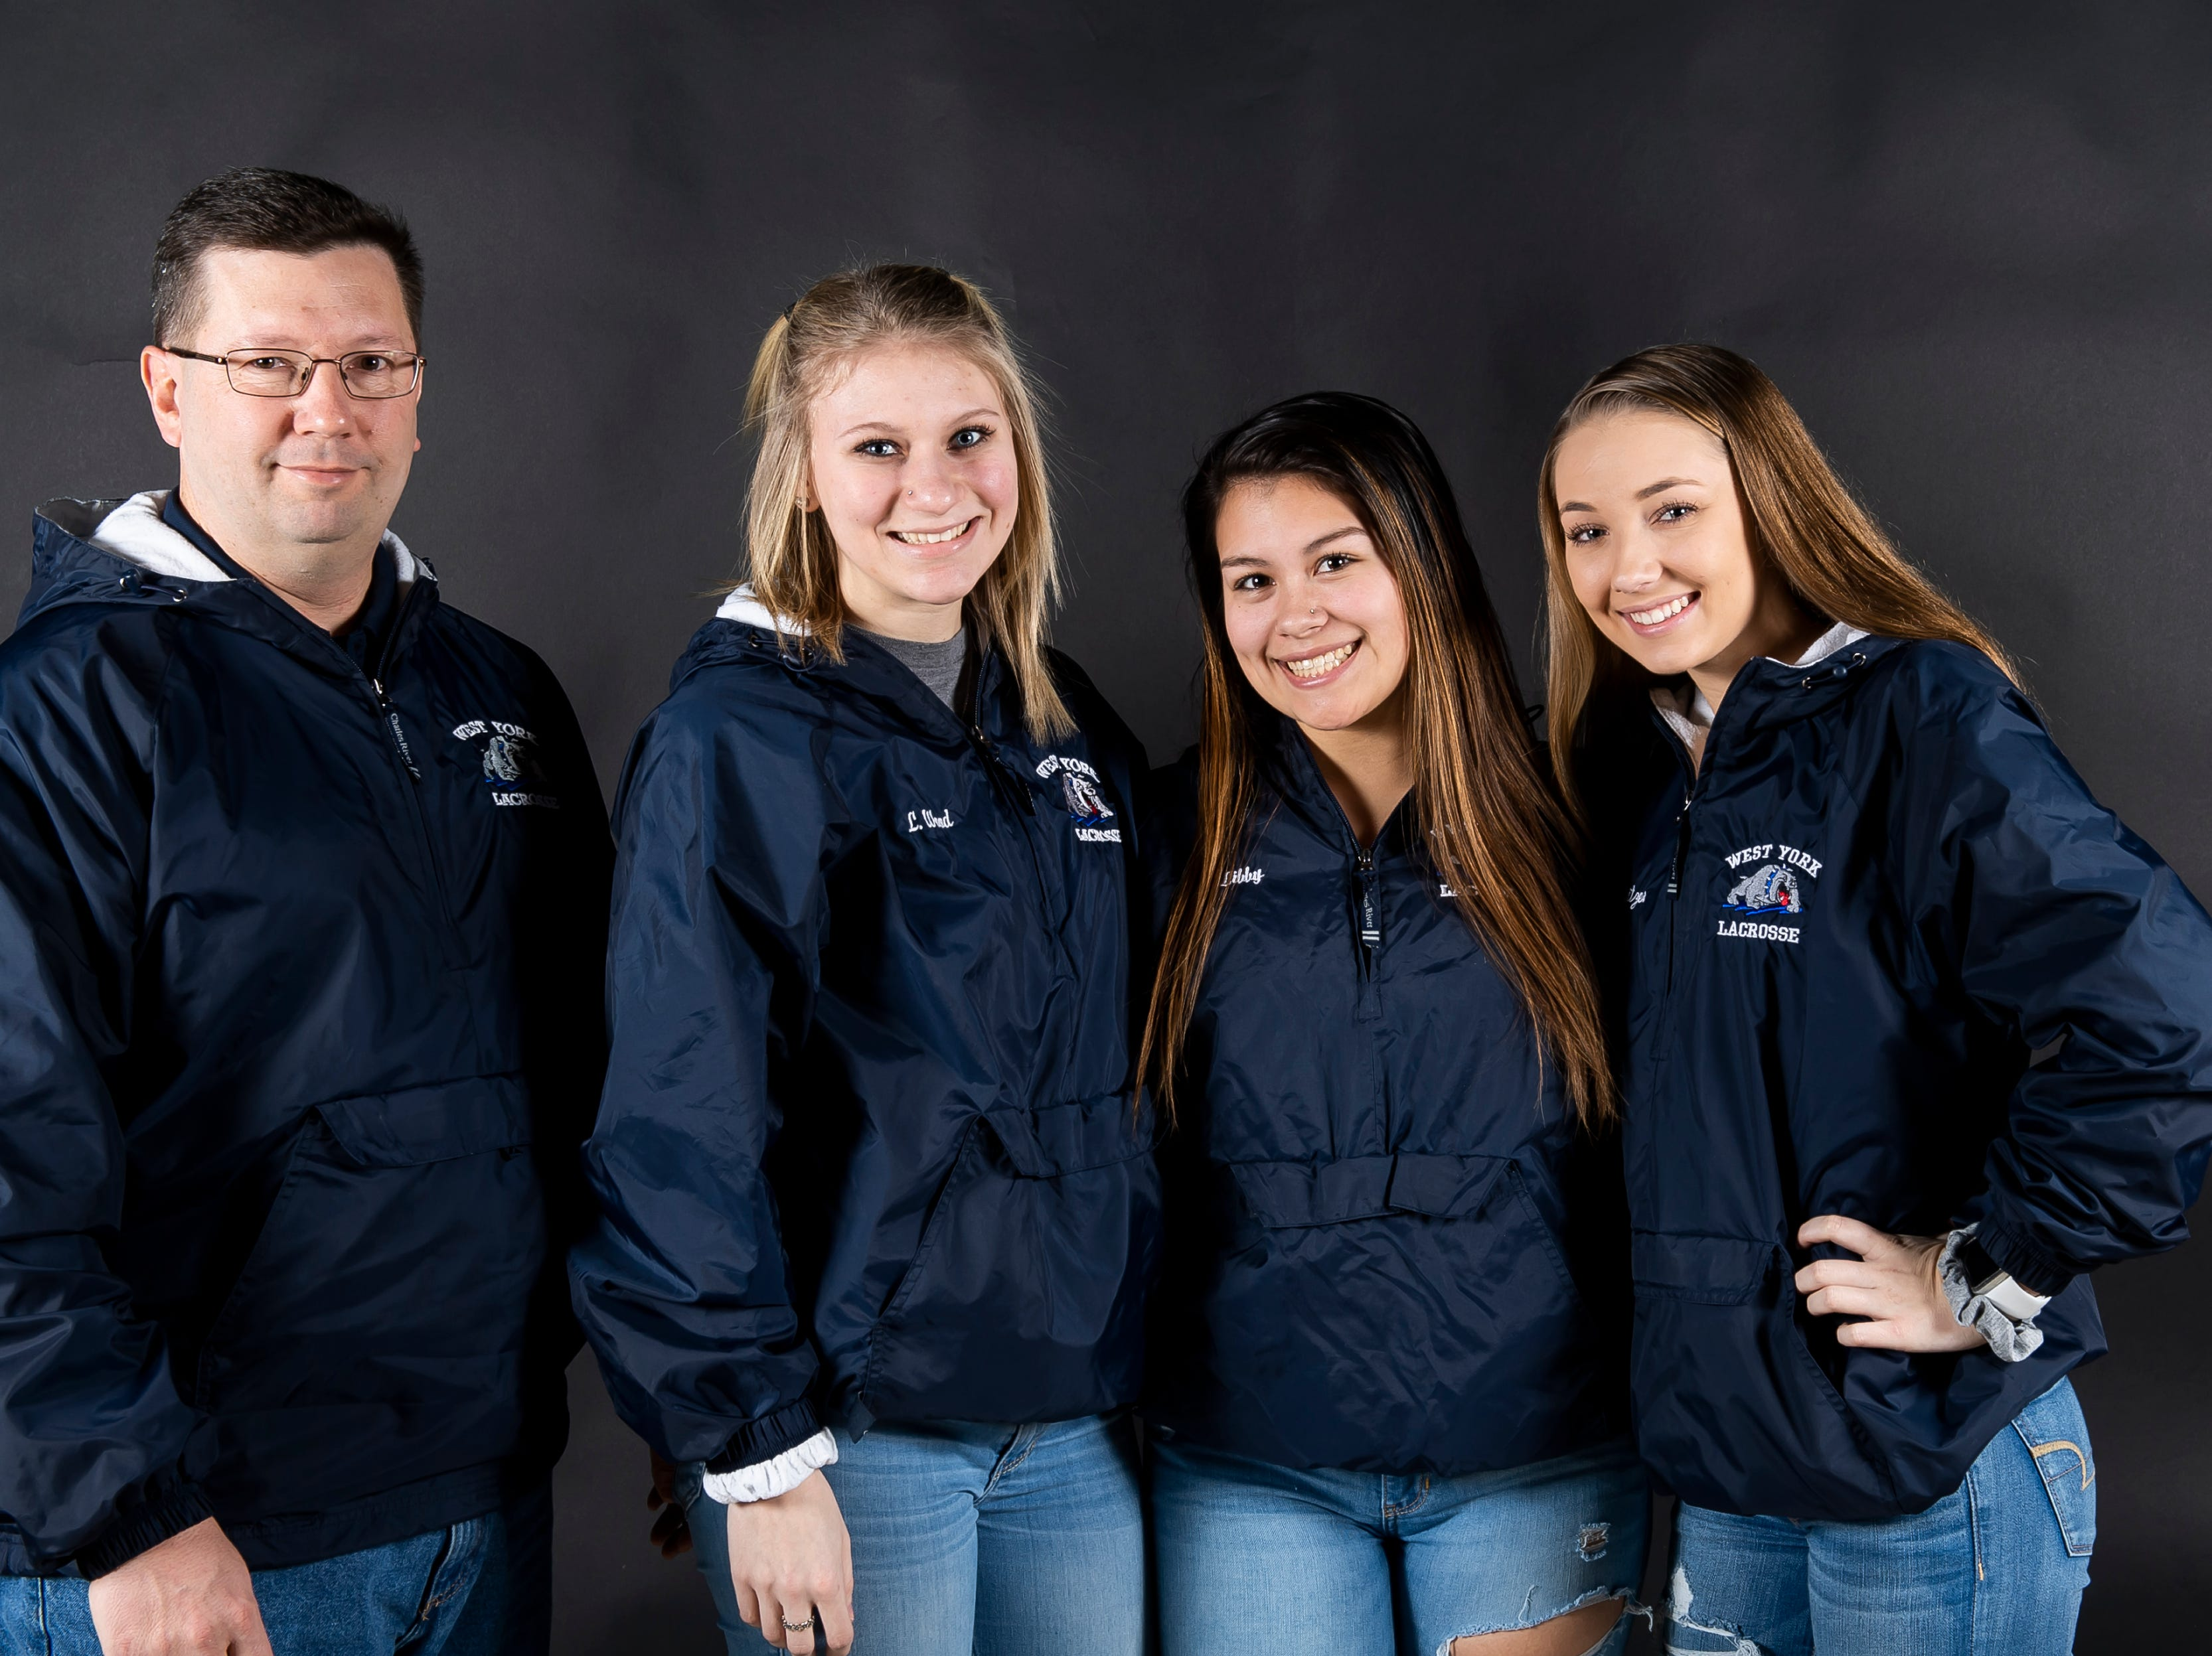 (From left) West York lacrosse coach Marcus Sweitzer and players Lizzie Wood, Libby Bahoric and Sydney Sweitzer pose in the GameTimePA photo booth during spring sports media day in York Sunday, March 10, 2019.